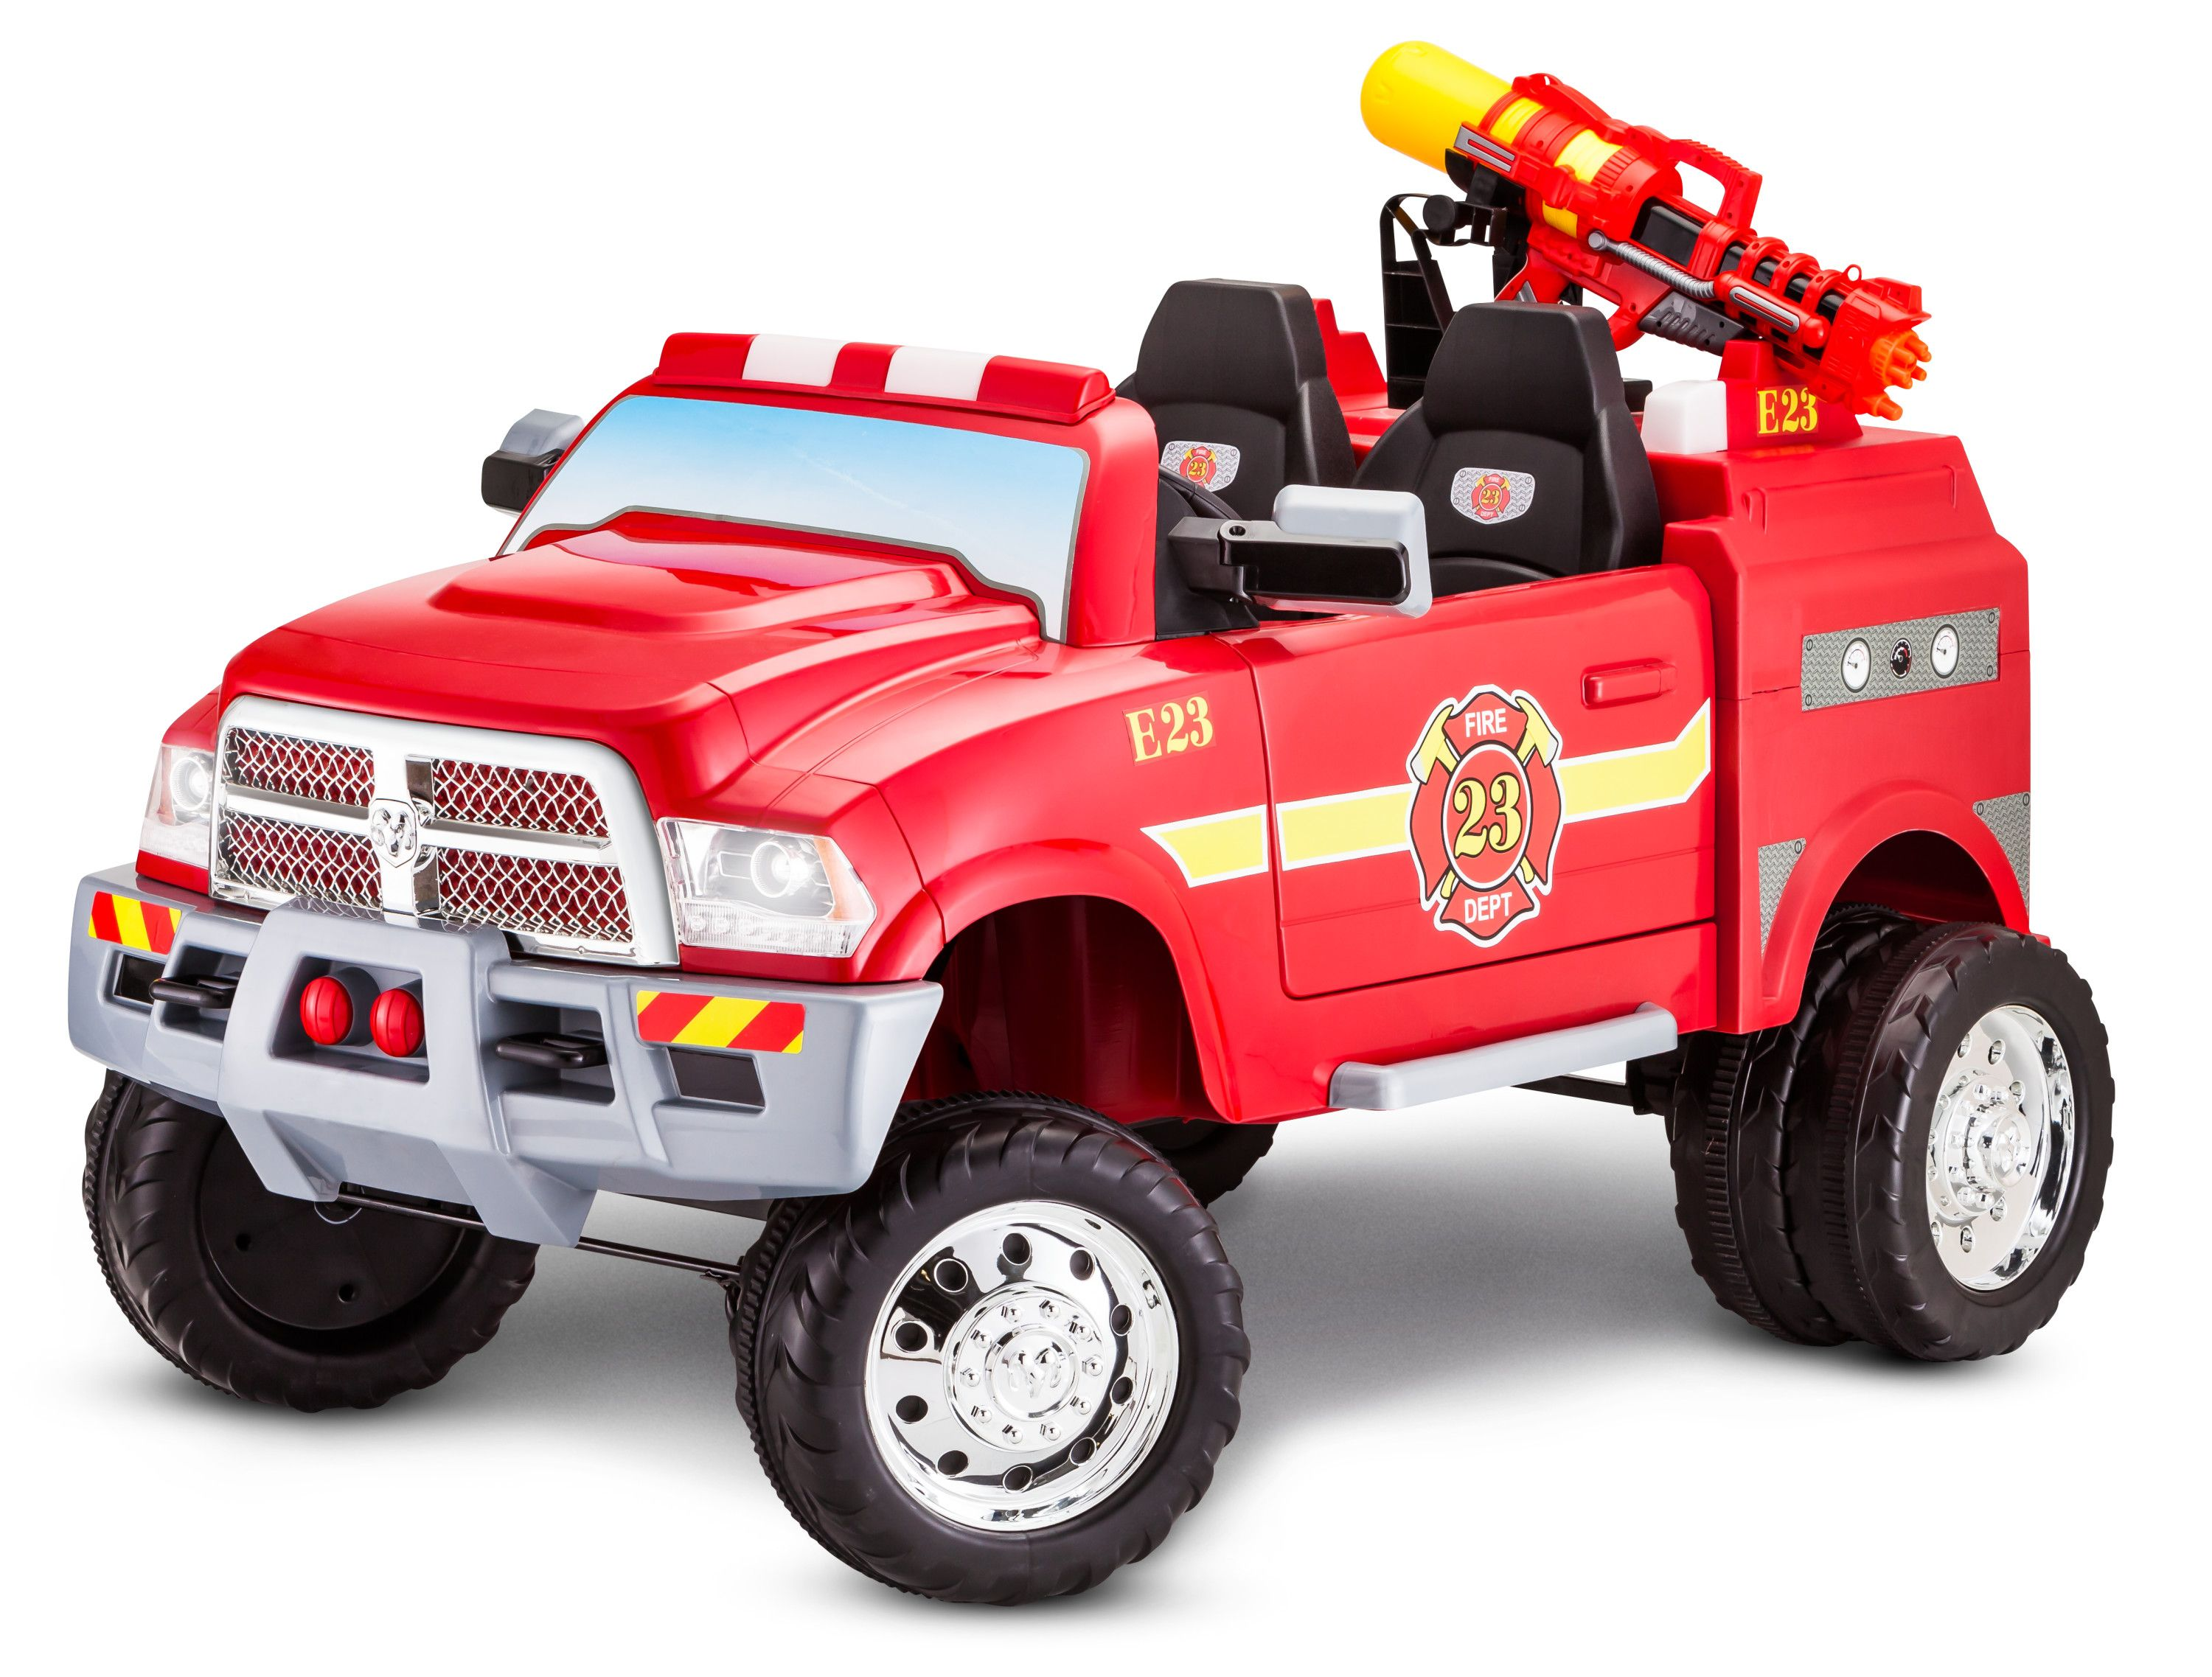 Ram 3500 Fire Truck Ride On Toy By Kid Trax Red Walmart Com Toy Fire Trucks Fire Trucks Ride On Toys